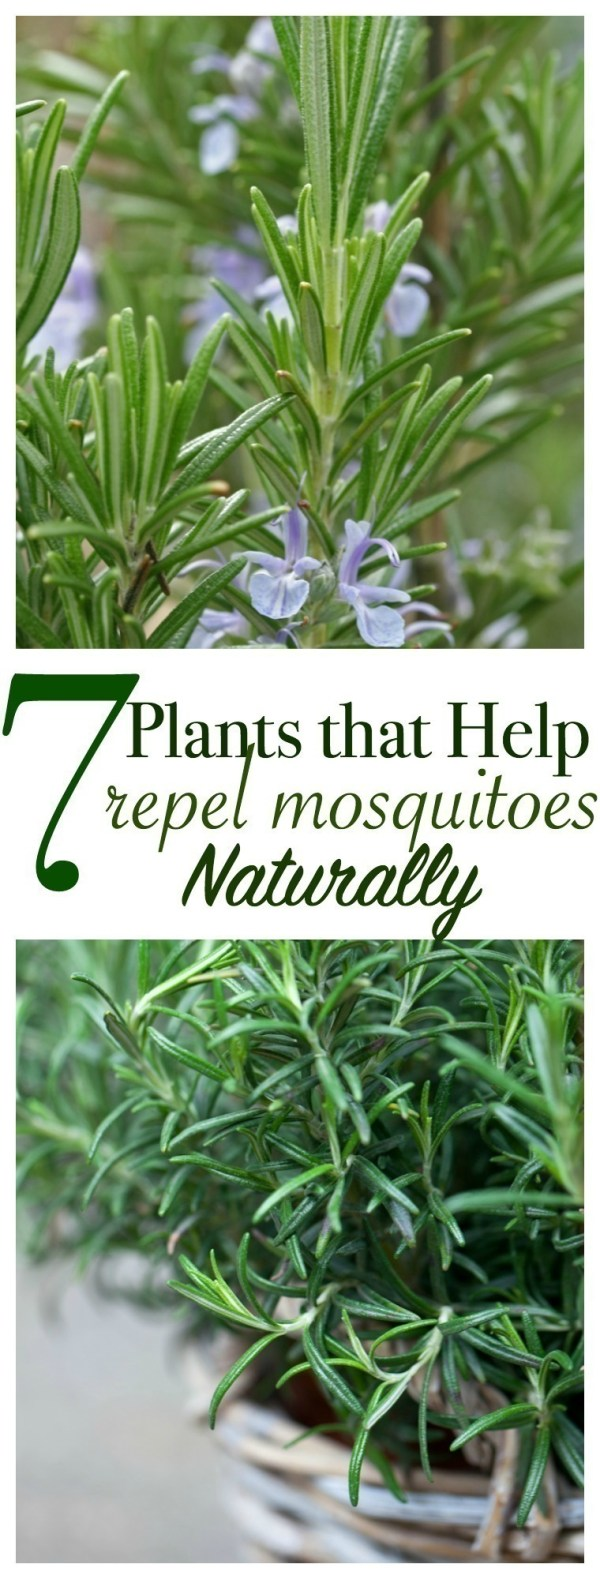 7 plants that help repel mosquitoes naturally for What plants naturally repel mosquitoes